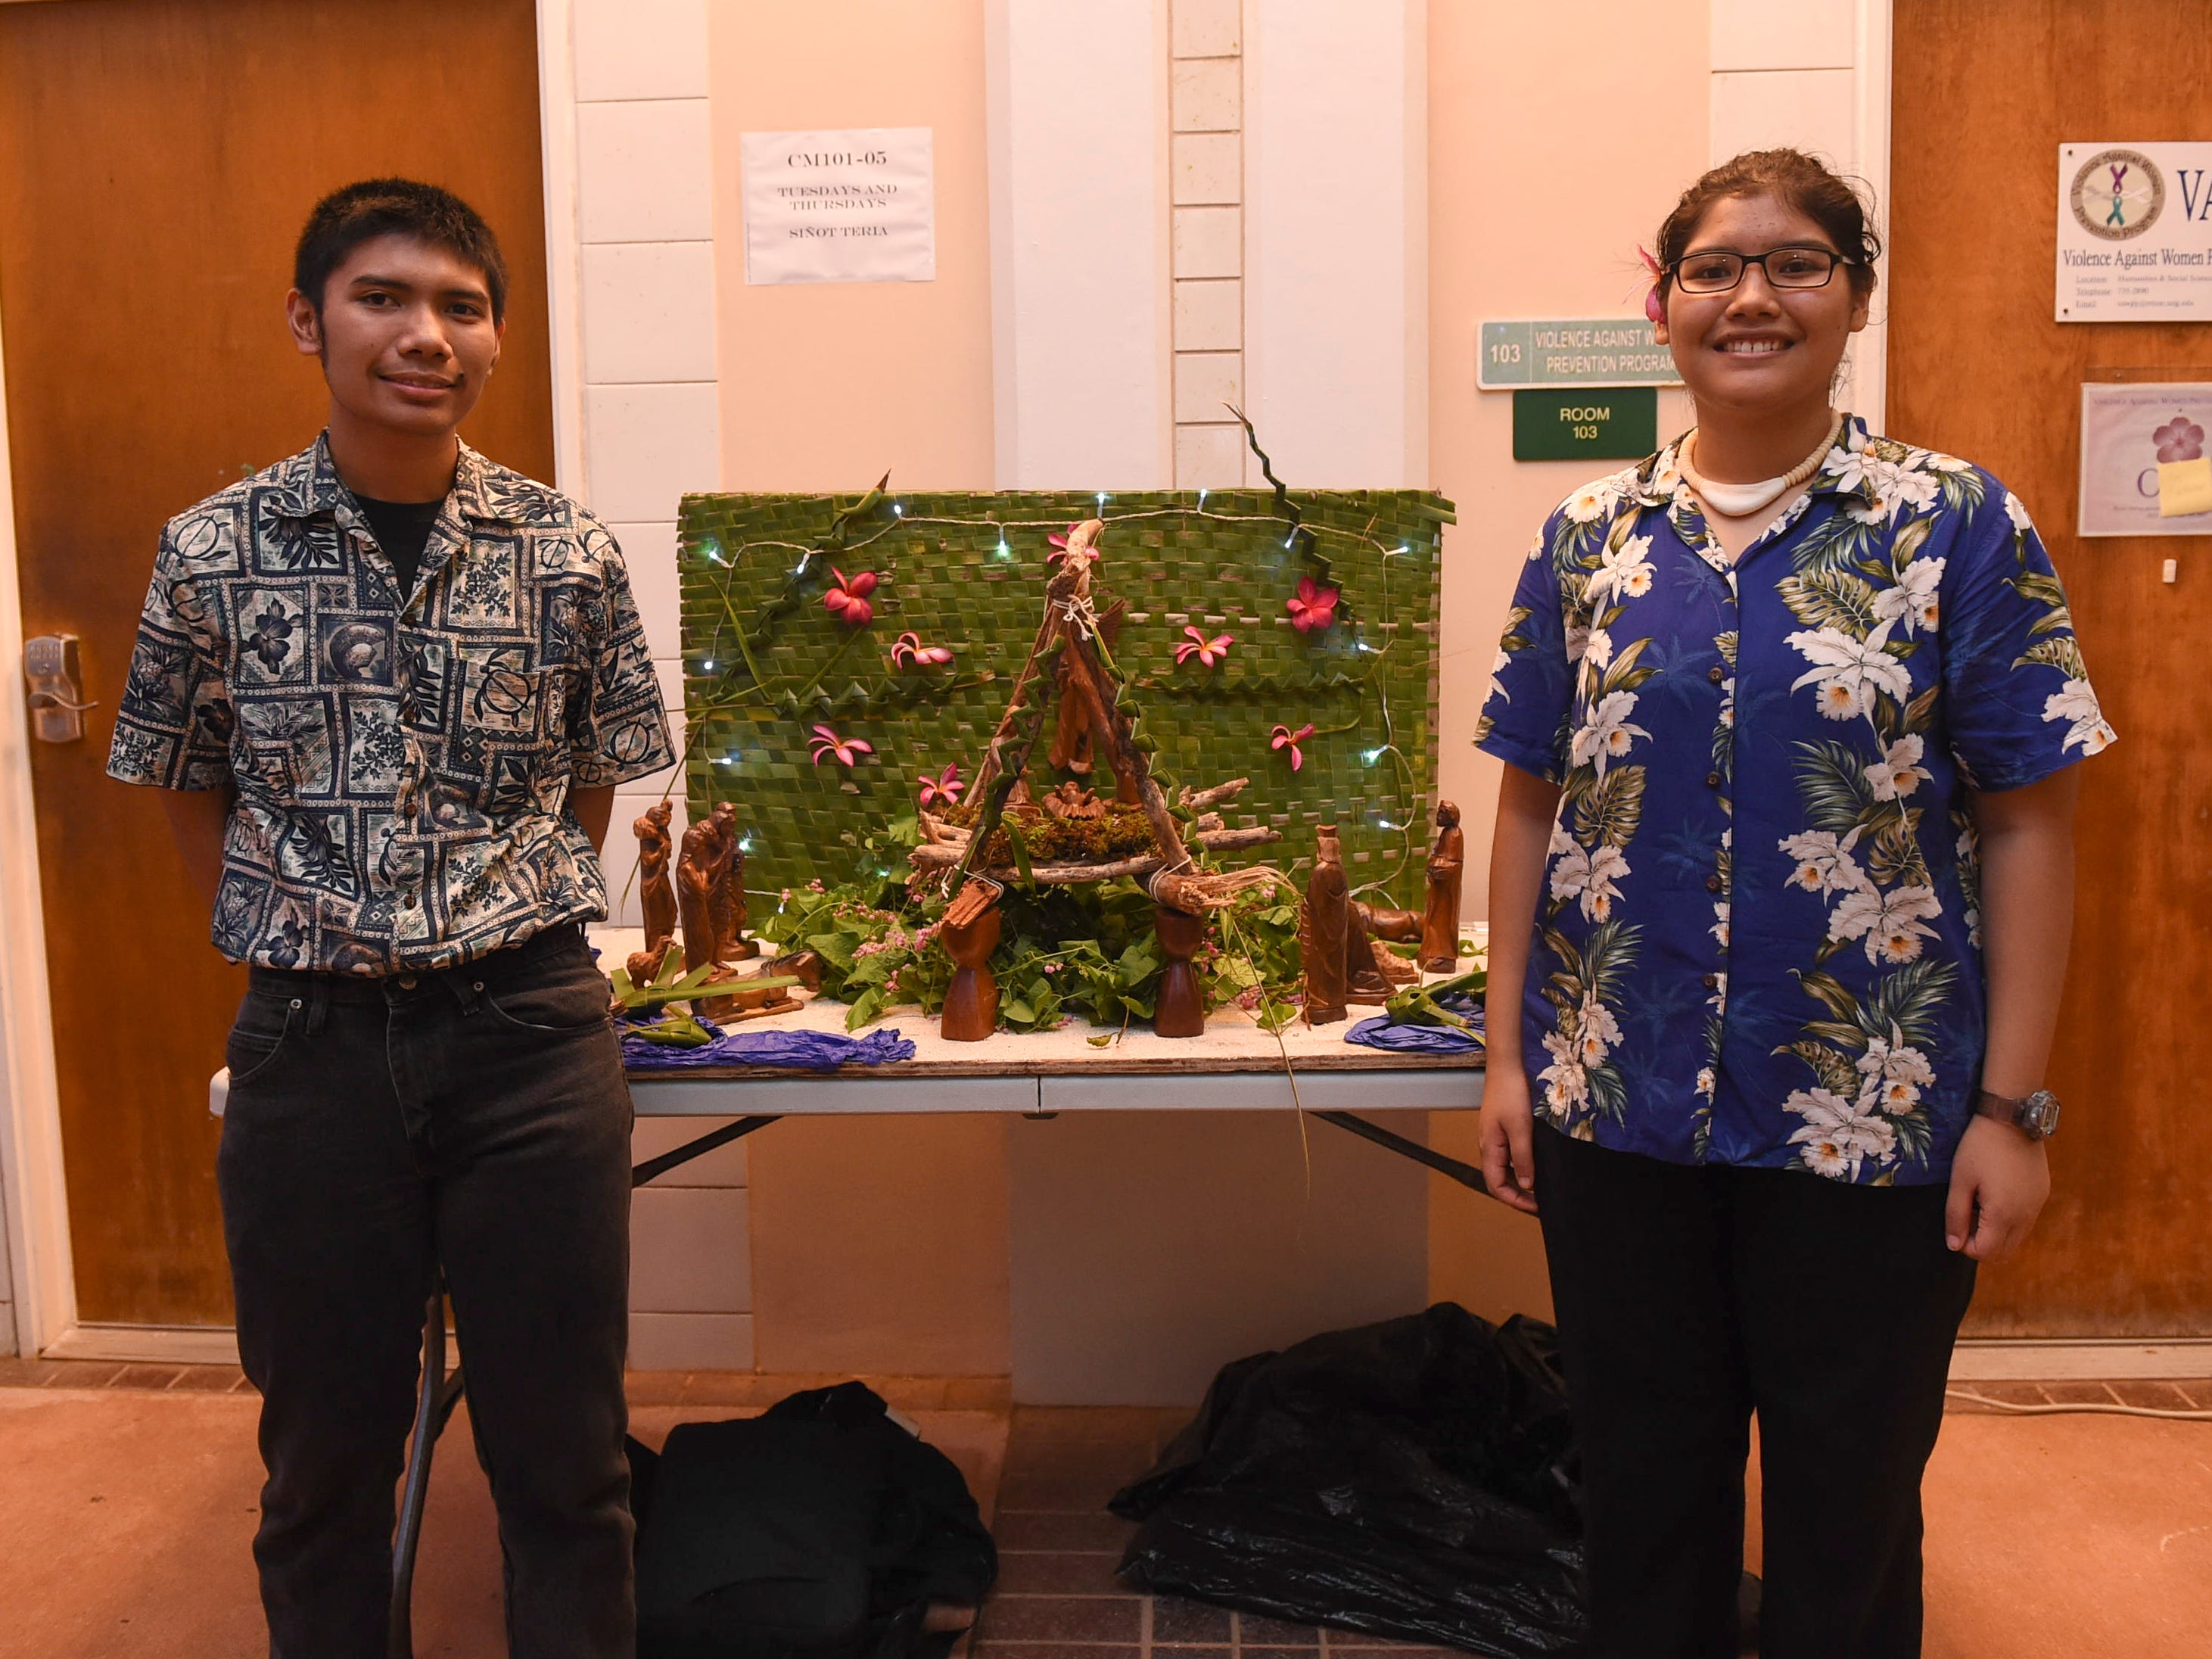 Students Kysha Concepcion and Edward Acfalle during the University of Guam Chamorro Studies Program's 2018 Christmas Celebration, Puengen Minagof Noche Buena! at the UOG Humanities and Social Sciences Building on Nov. 30, 2018.